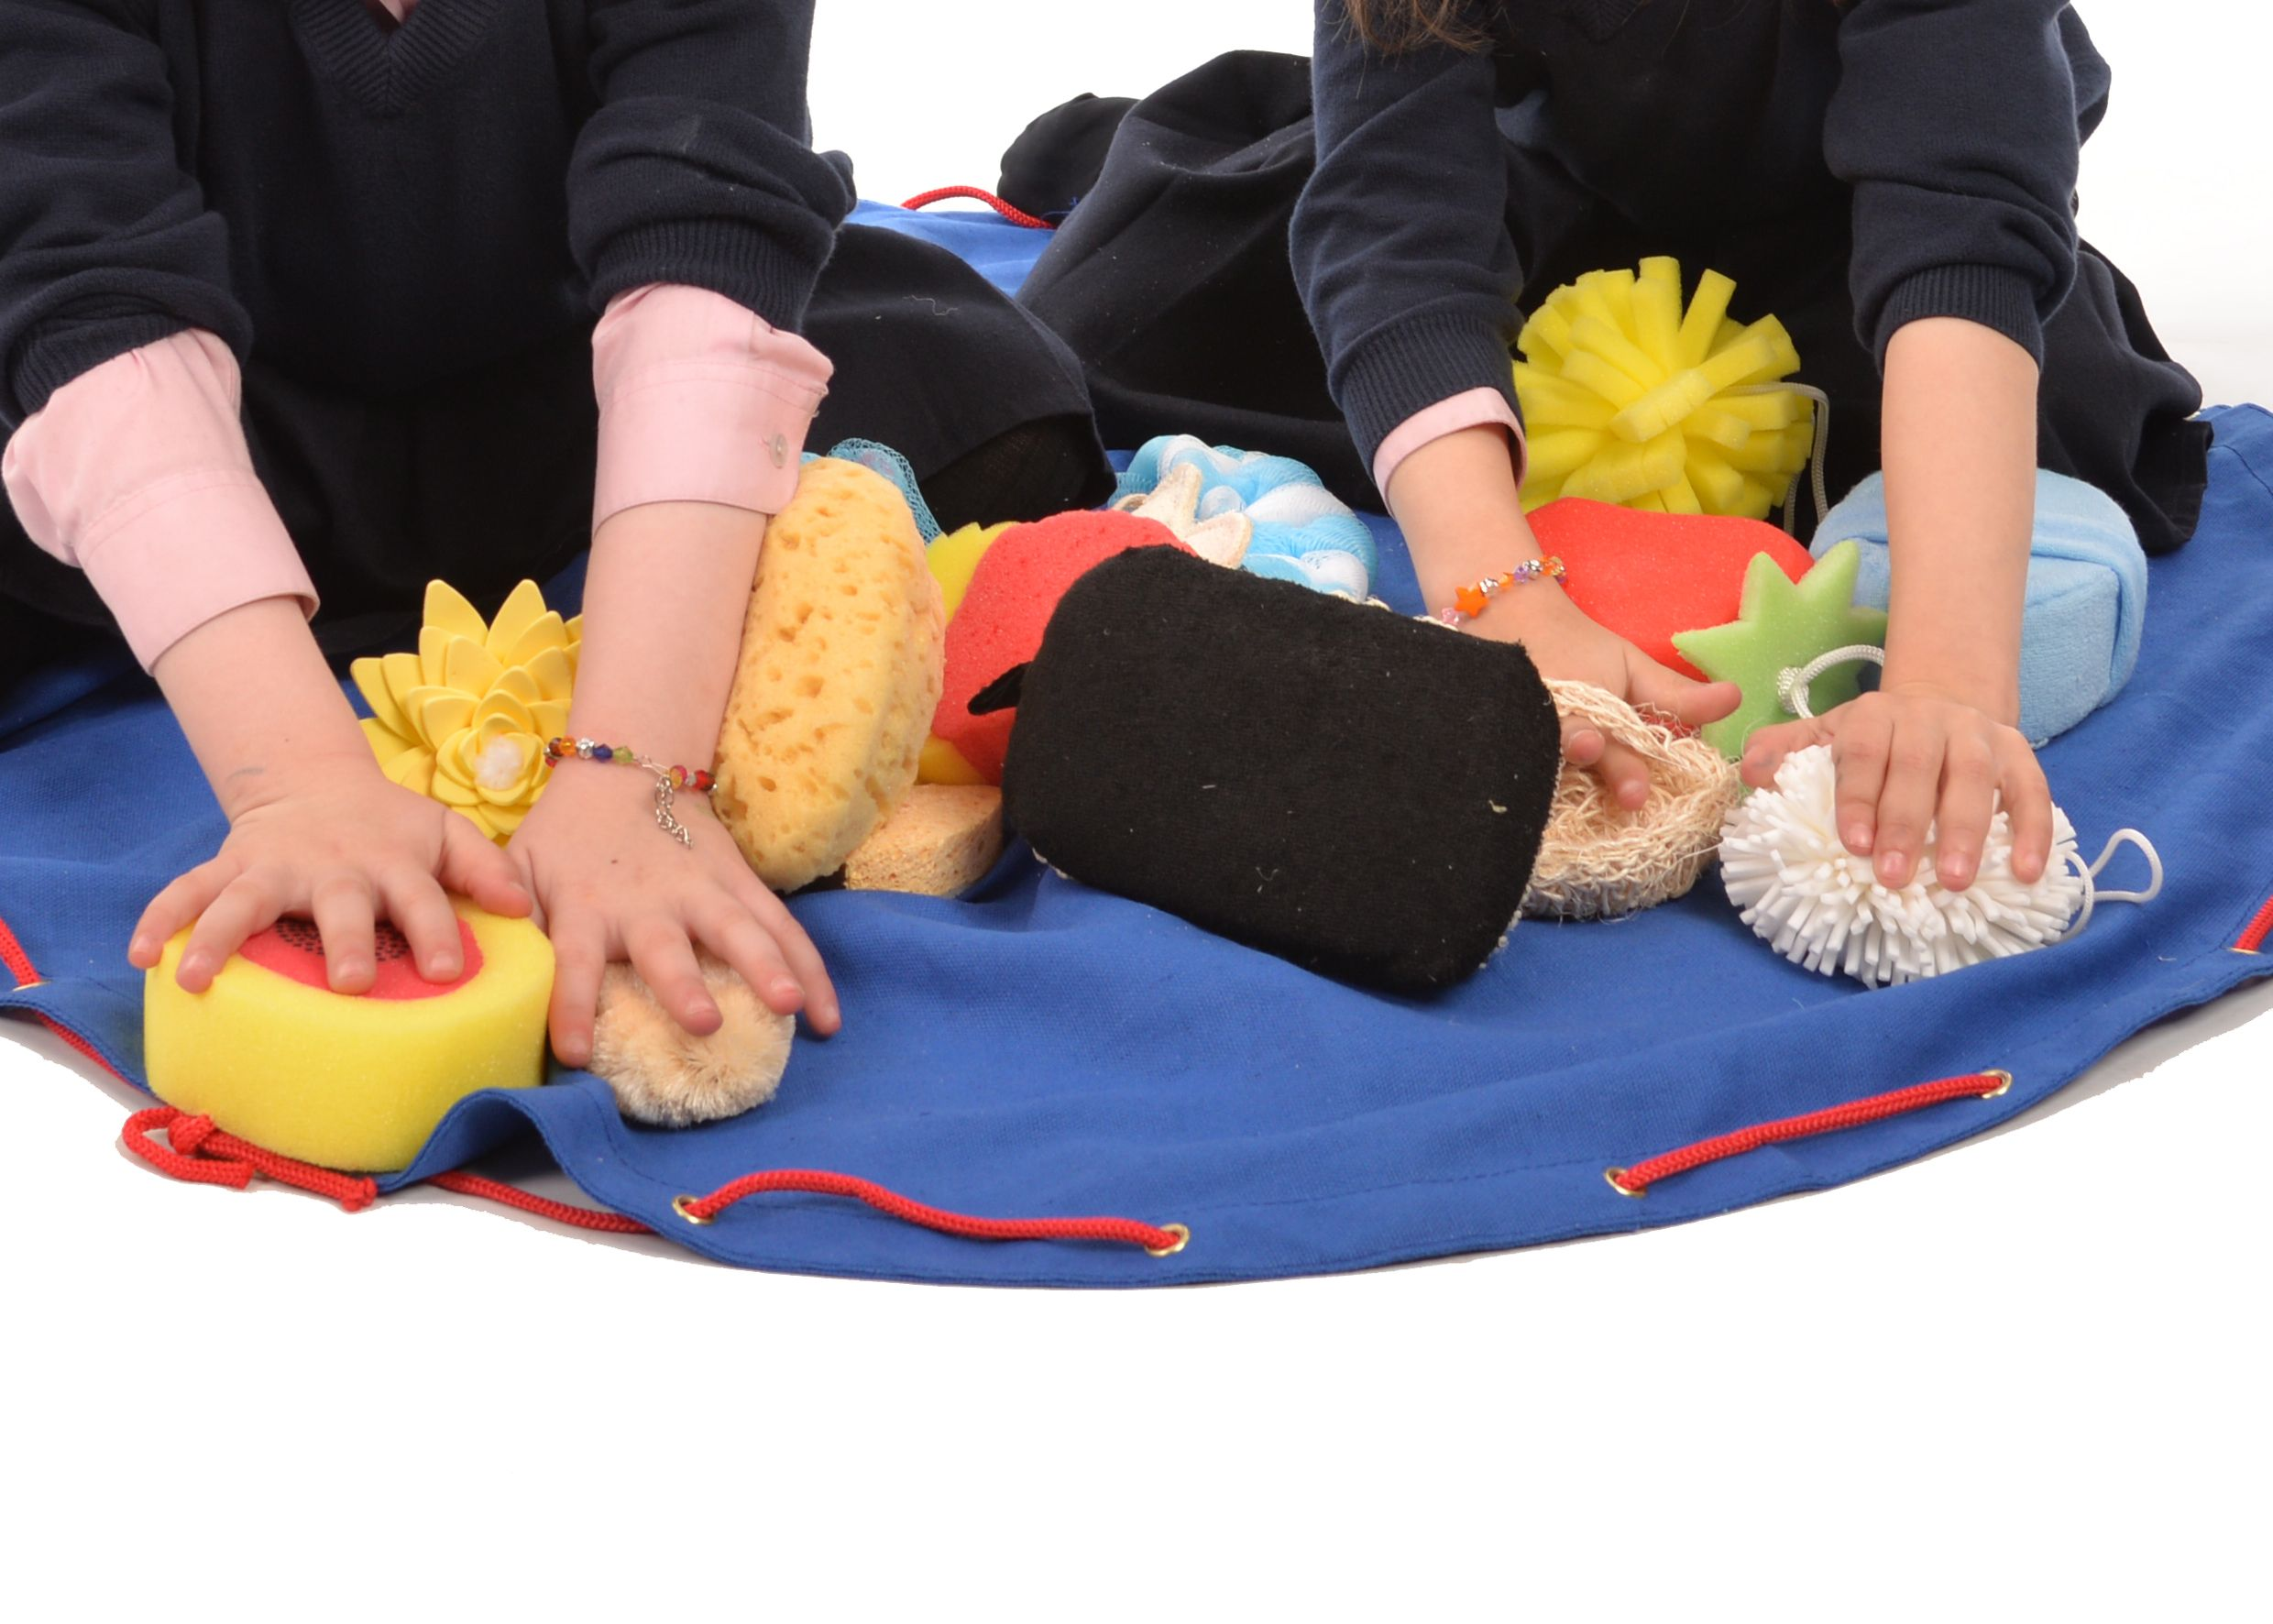 Sensory Toys For Adults With Autism : Tactile sponge set for children with sensory needs visual